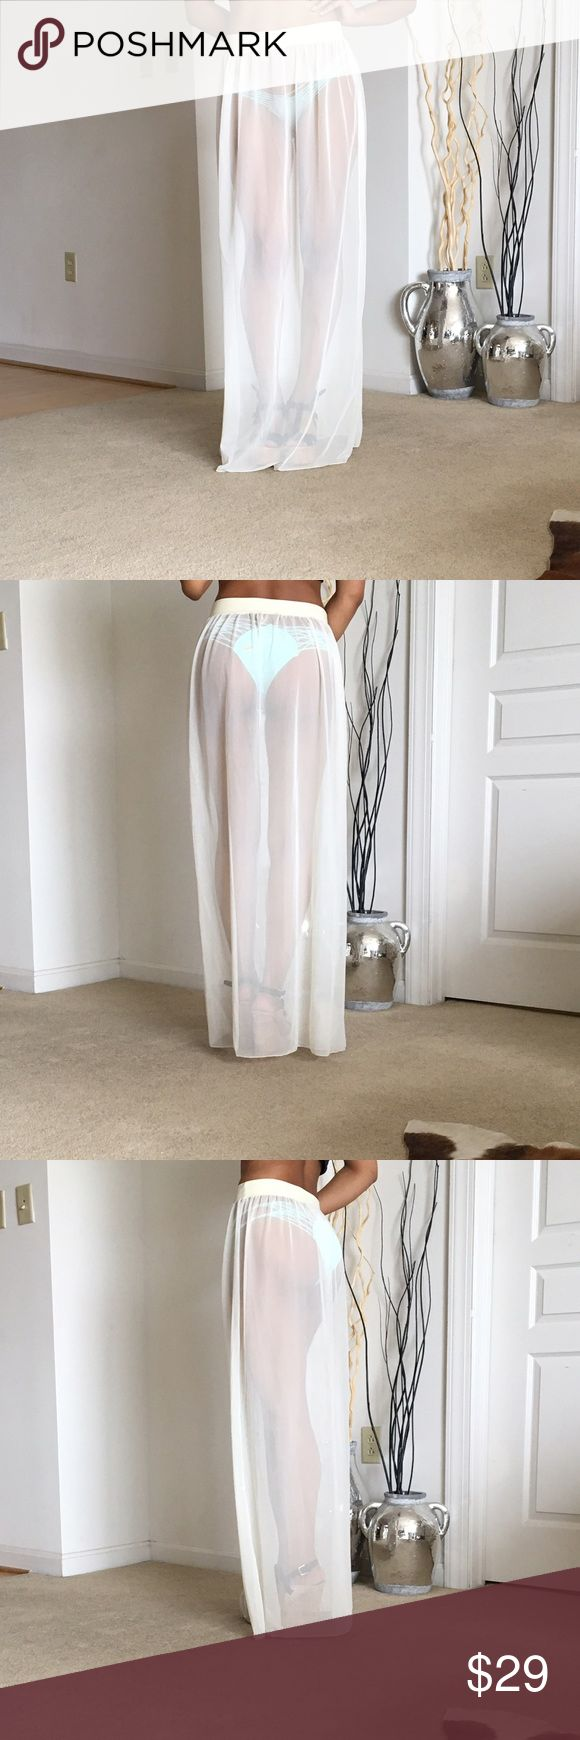 "Sheer ivory swimsuit coverup Sheer bikini cover up skirt. Stretchy waistband will fit most sizes. Could also be worn as a bandeau dress. I'm 5'5"" wearing a 4.5"" wedge. New and never worn. Purchased from a boutique in Florida. Skirts Maxi"